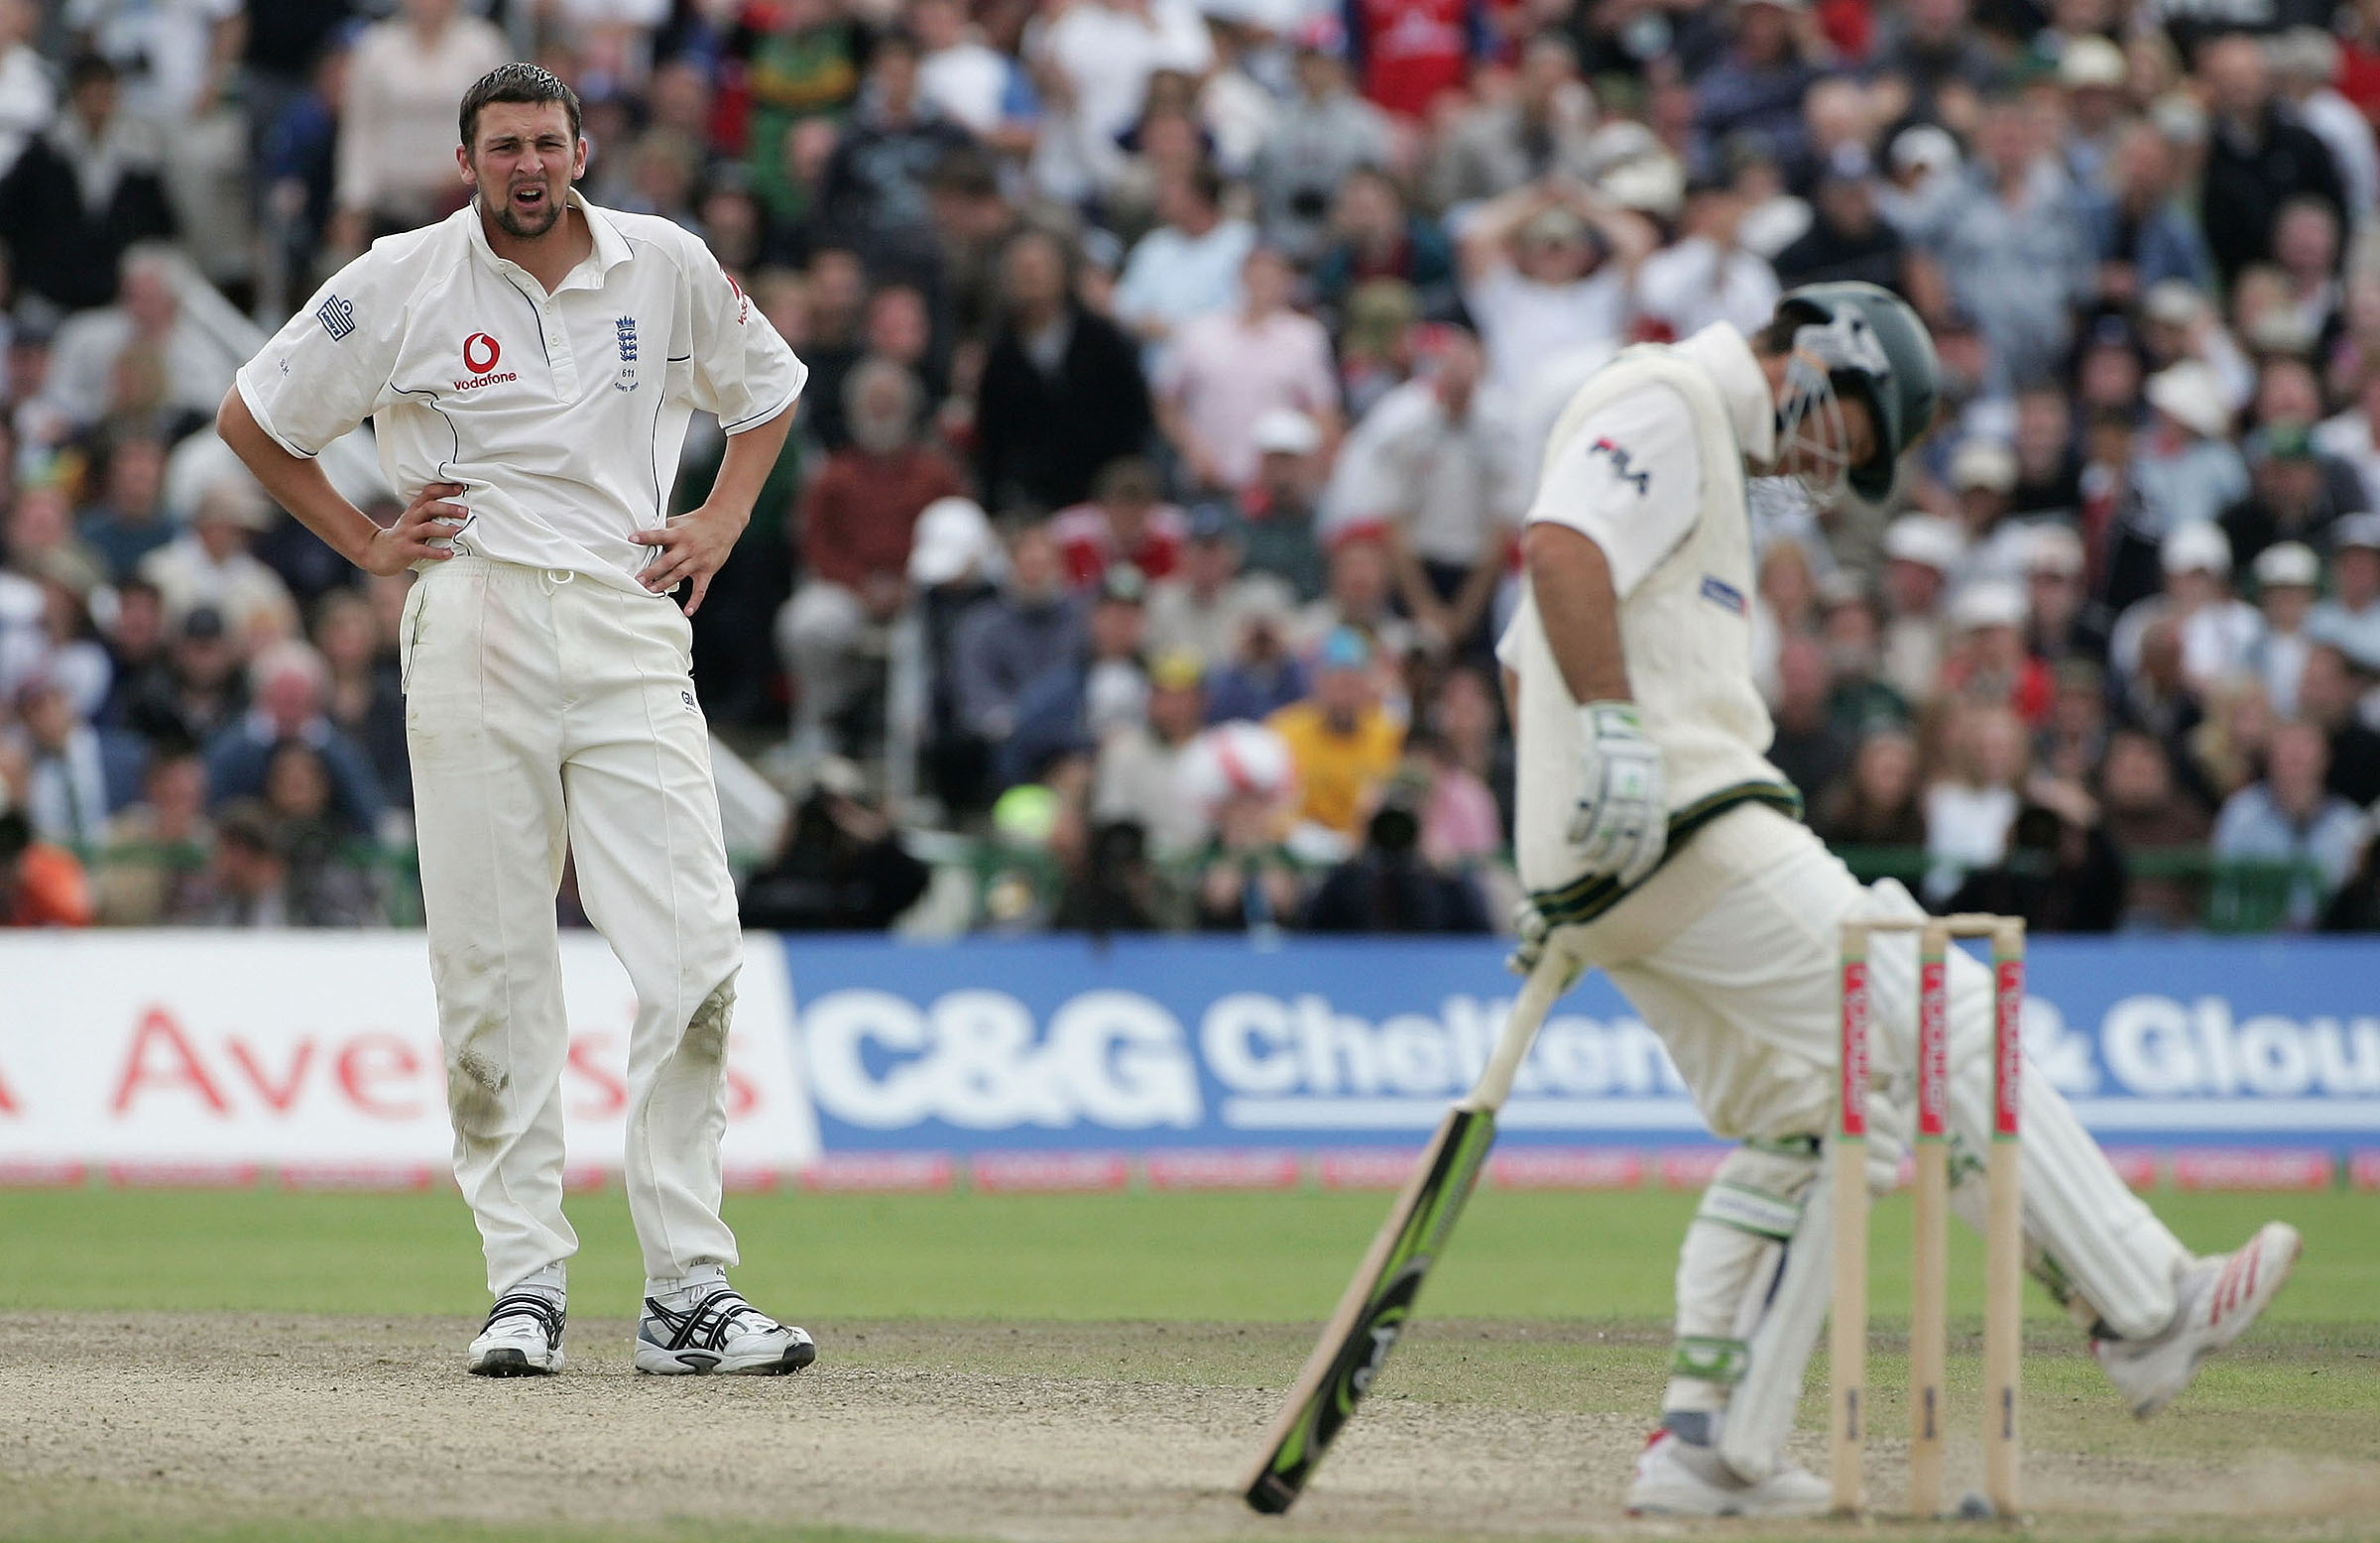 Steve Harmison stares down Australia's human road block // Getty